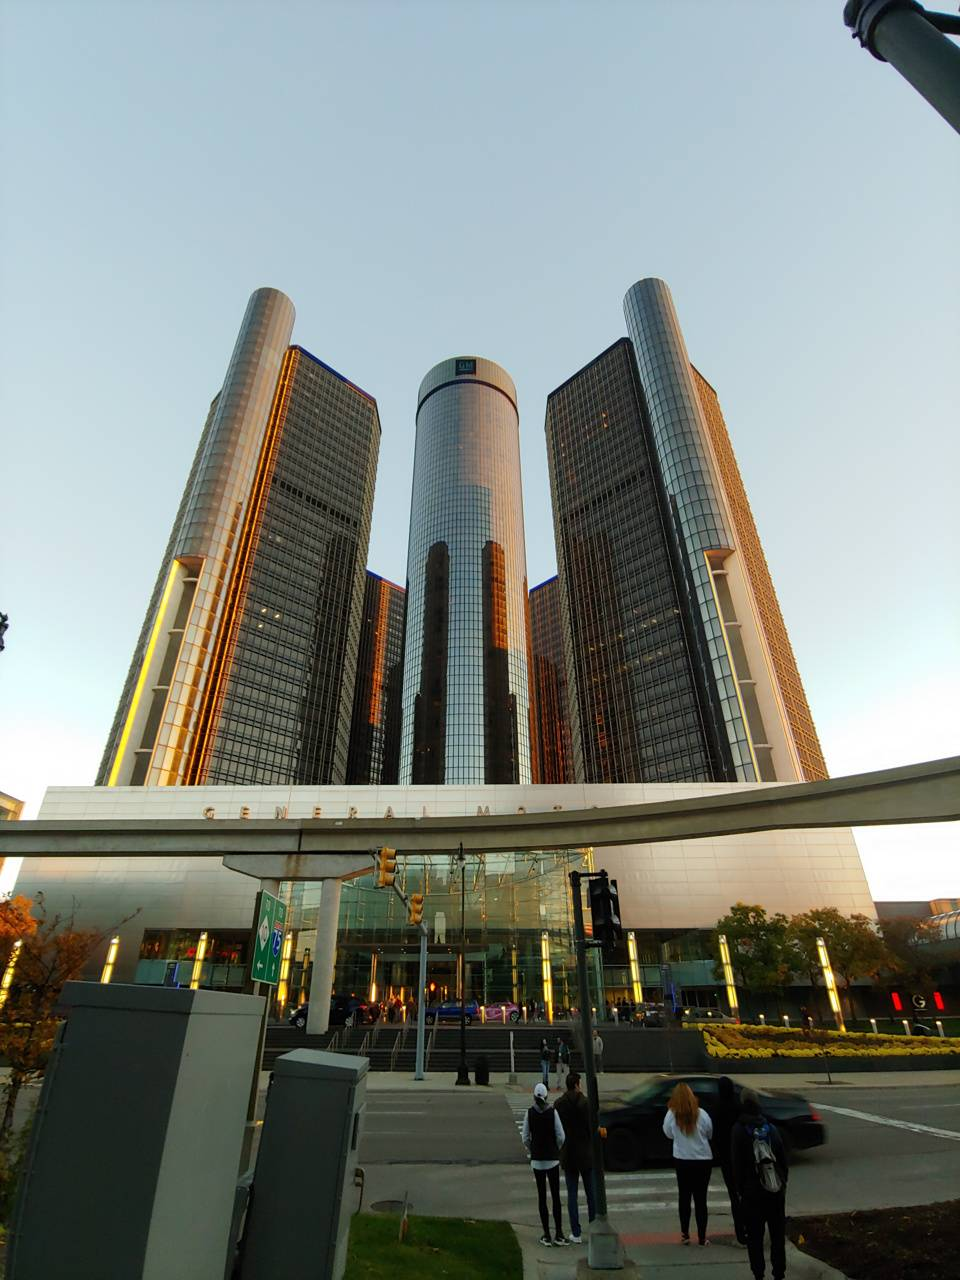 The ren cen detroit